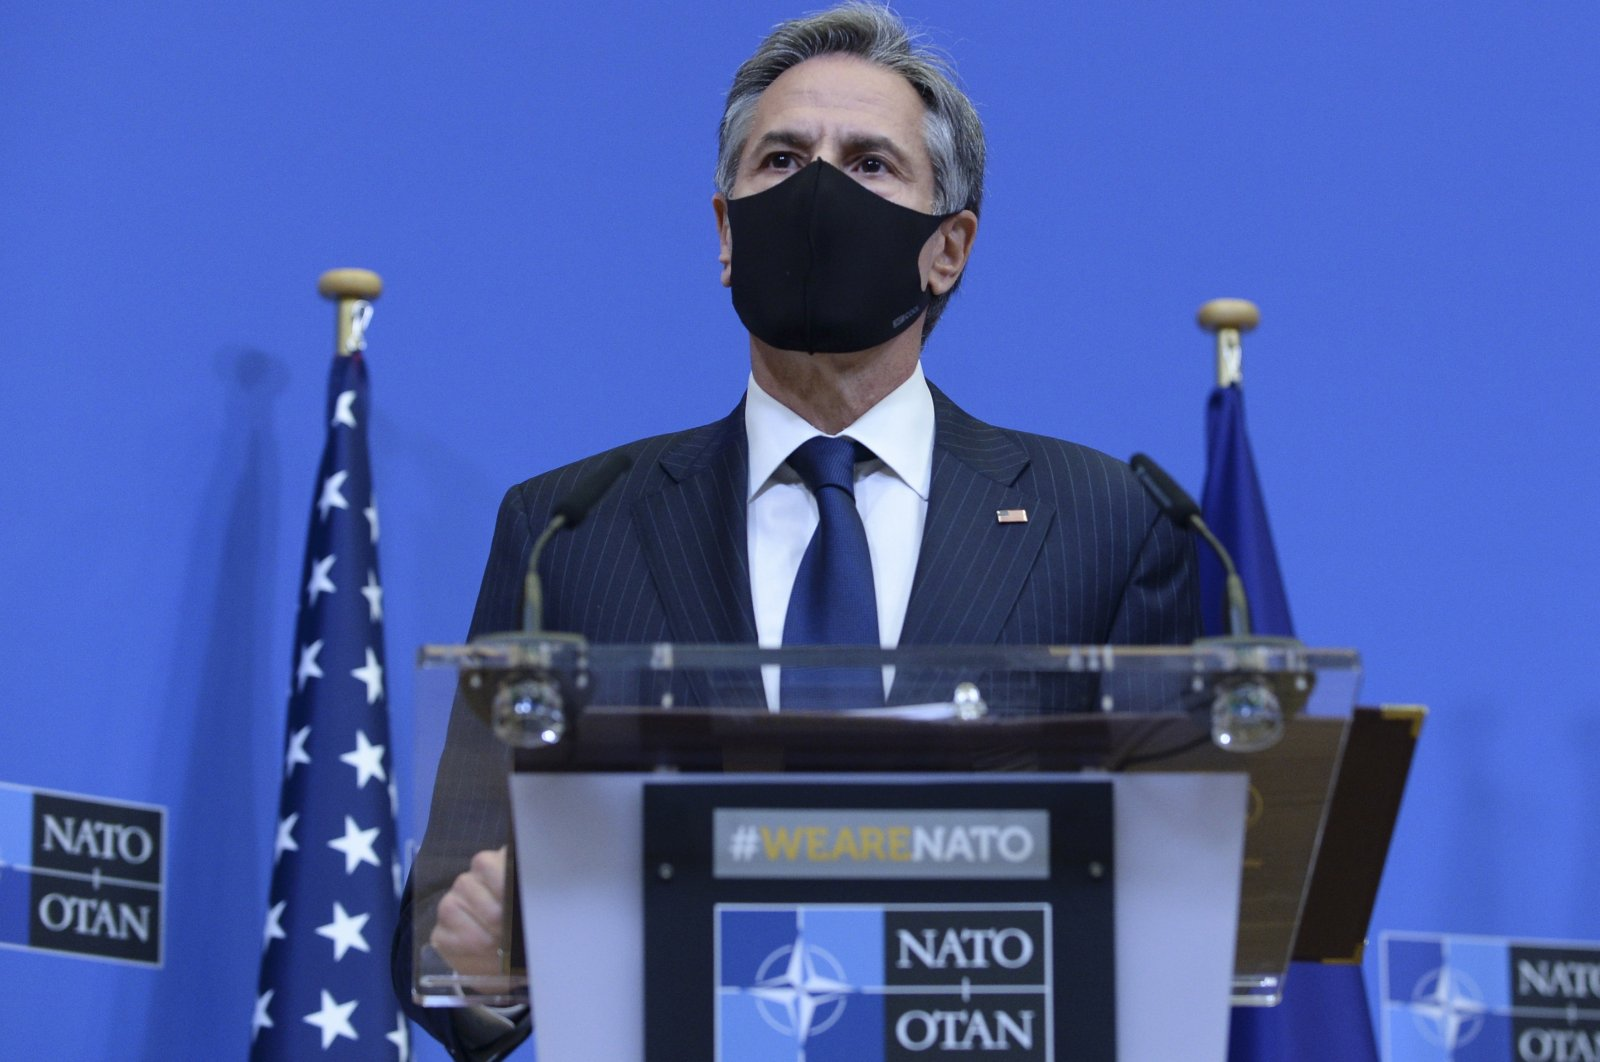 U.S. Secretary of State Antony Blinken speaks during a media conference at NATO headquarters in Brussels, Belgium, Wednesday, April 14, 2021. (AP Photo)